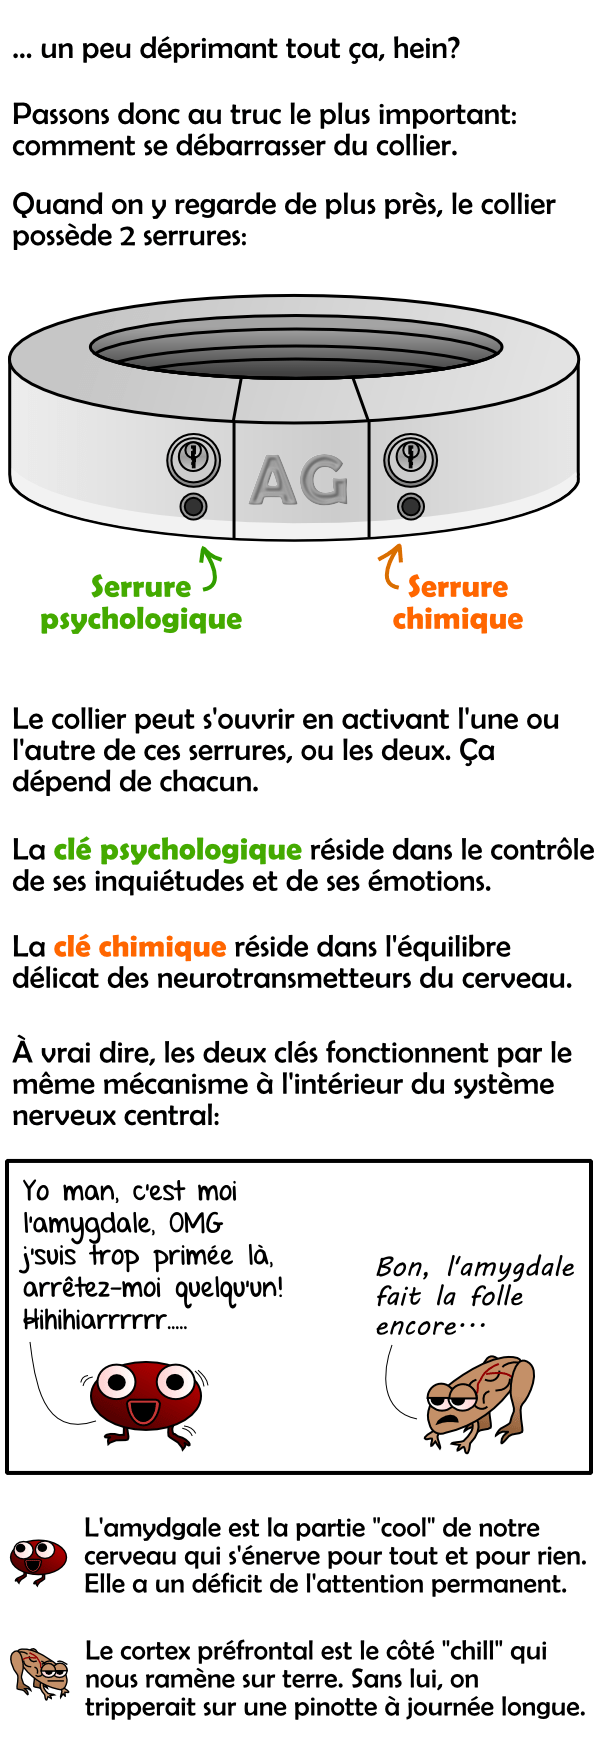 Les serrures psychologique et chimique du collier de métal et intro sur l'amygdale et le cortex préfrontal